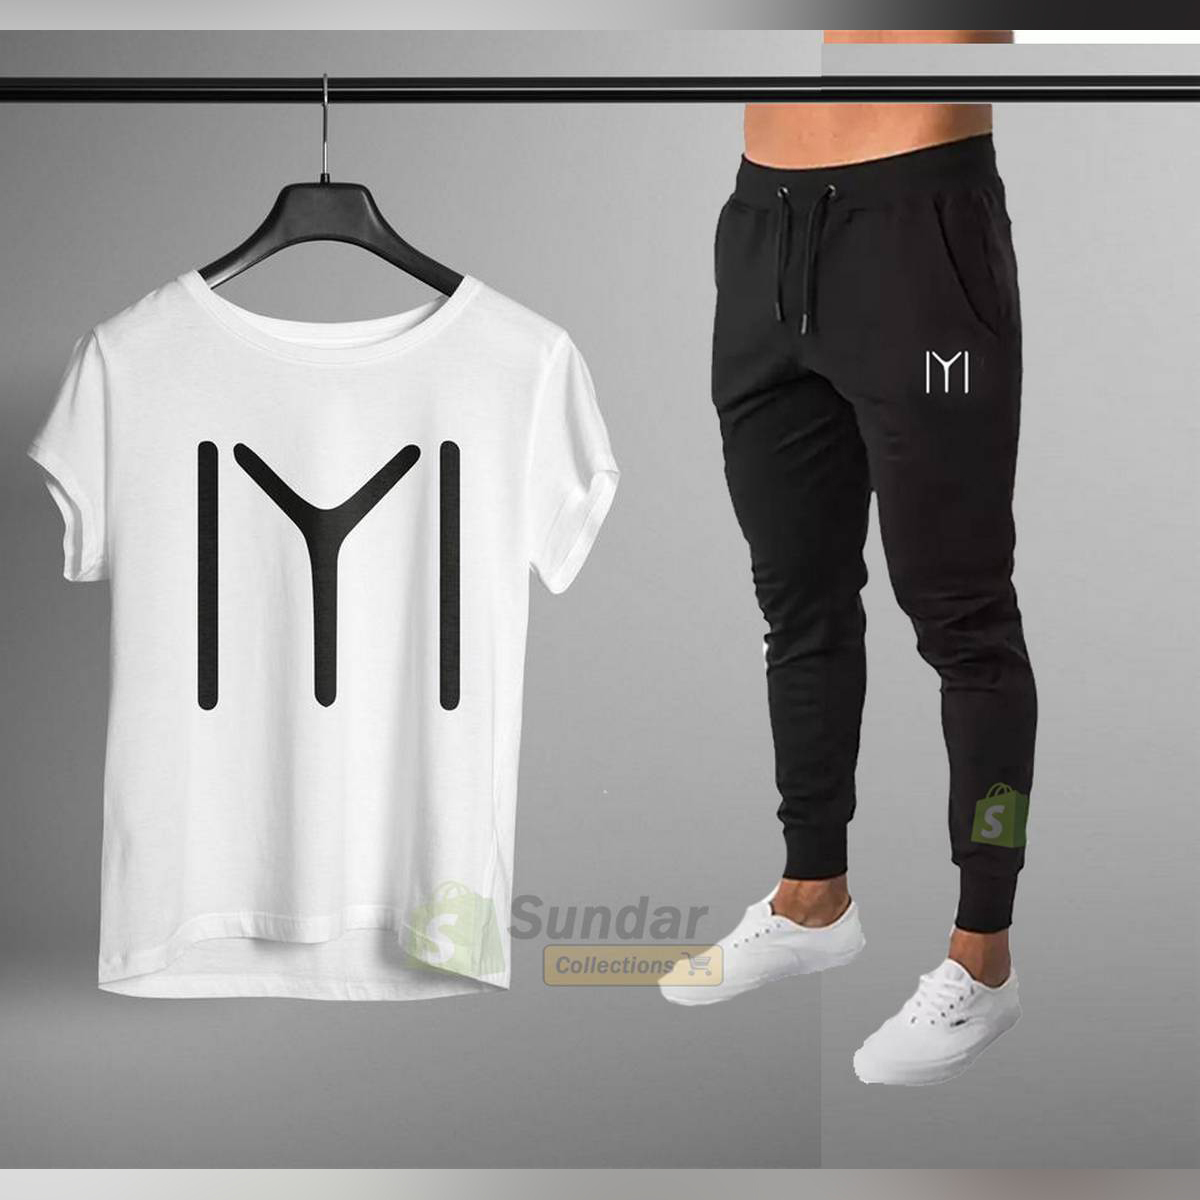 Kayi Men stylish T shirt and trouser.Two Pieces.